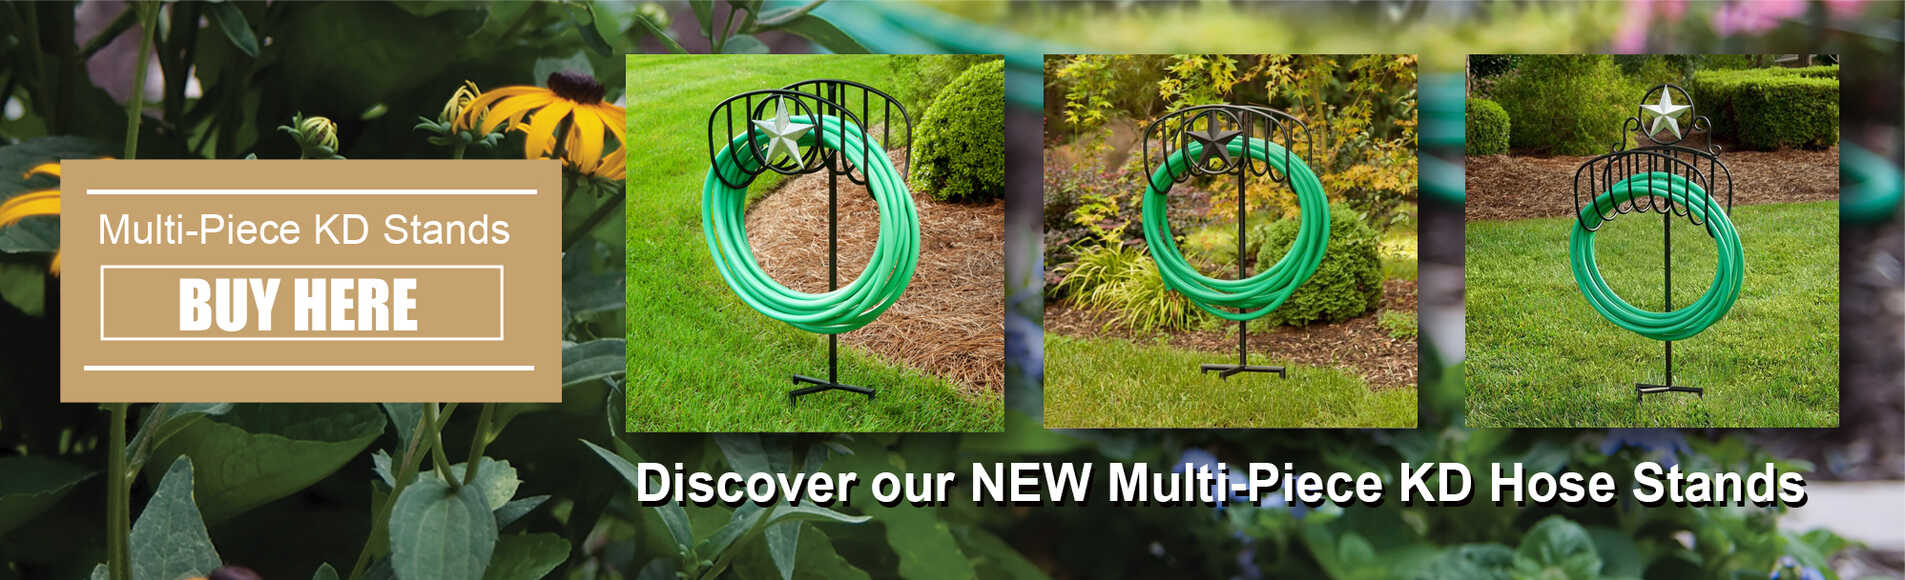 Multi-piece KD Hose Stands